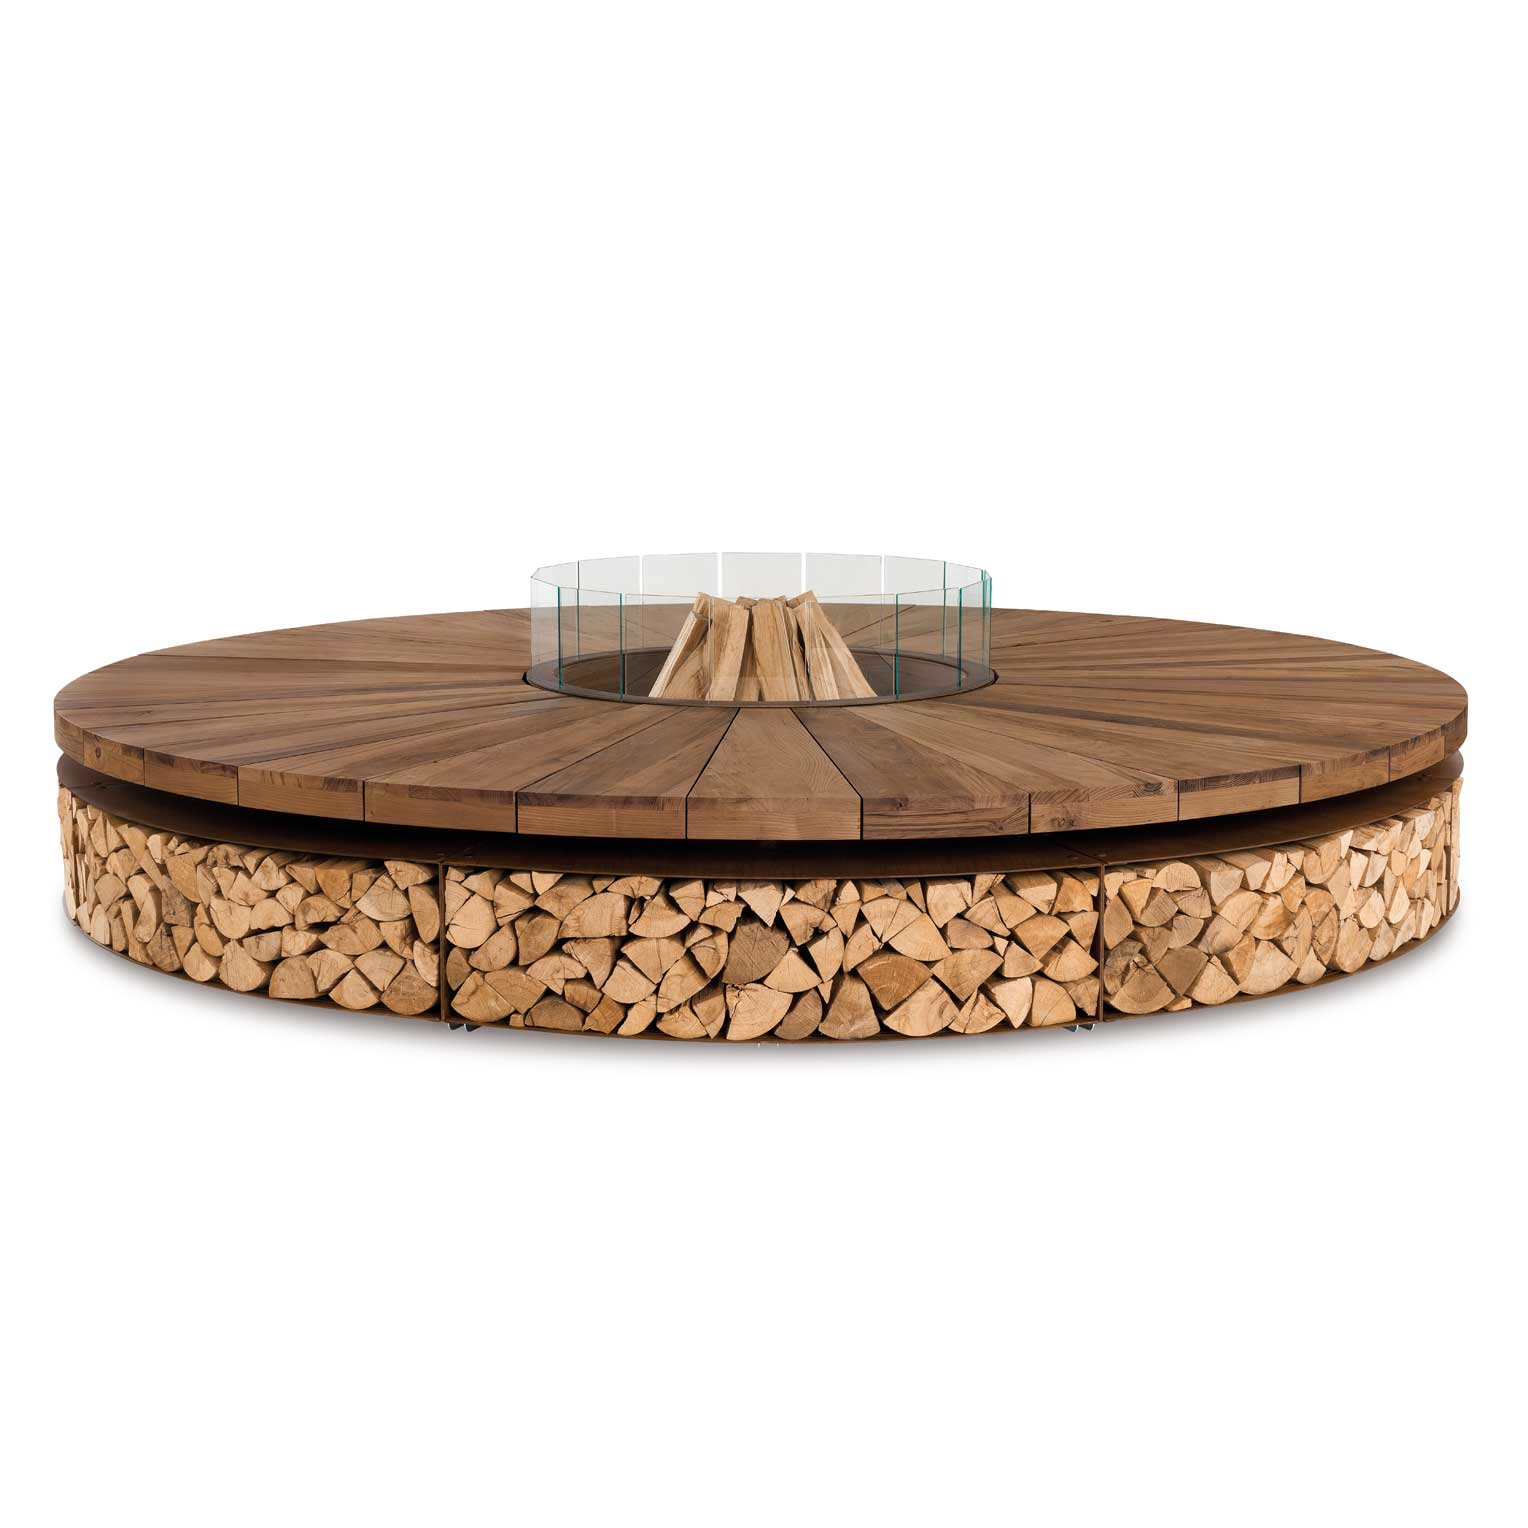 Artu' Outdoor Design fire pit